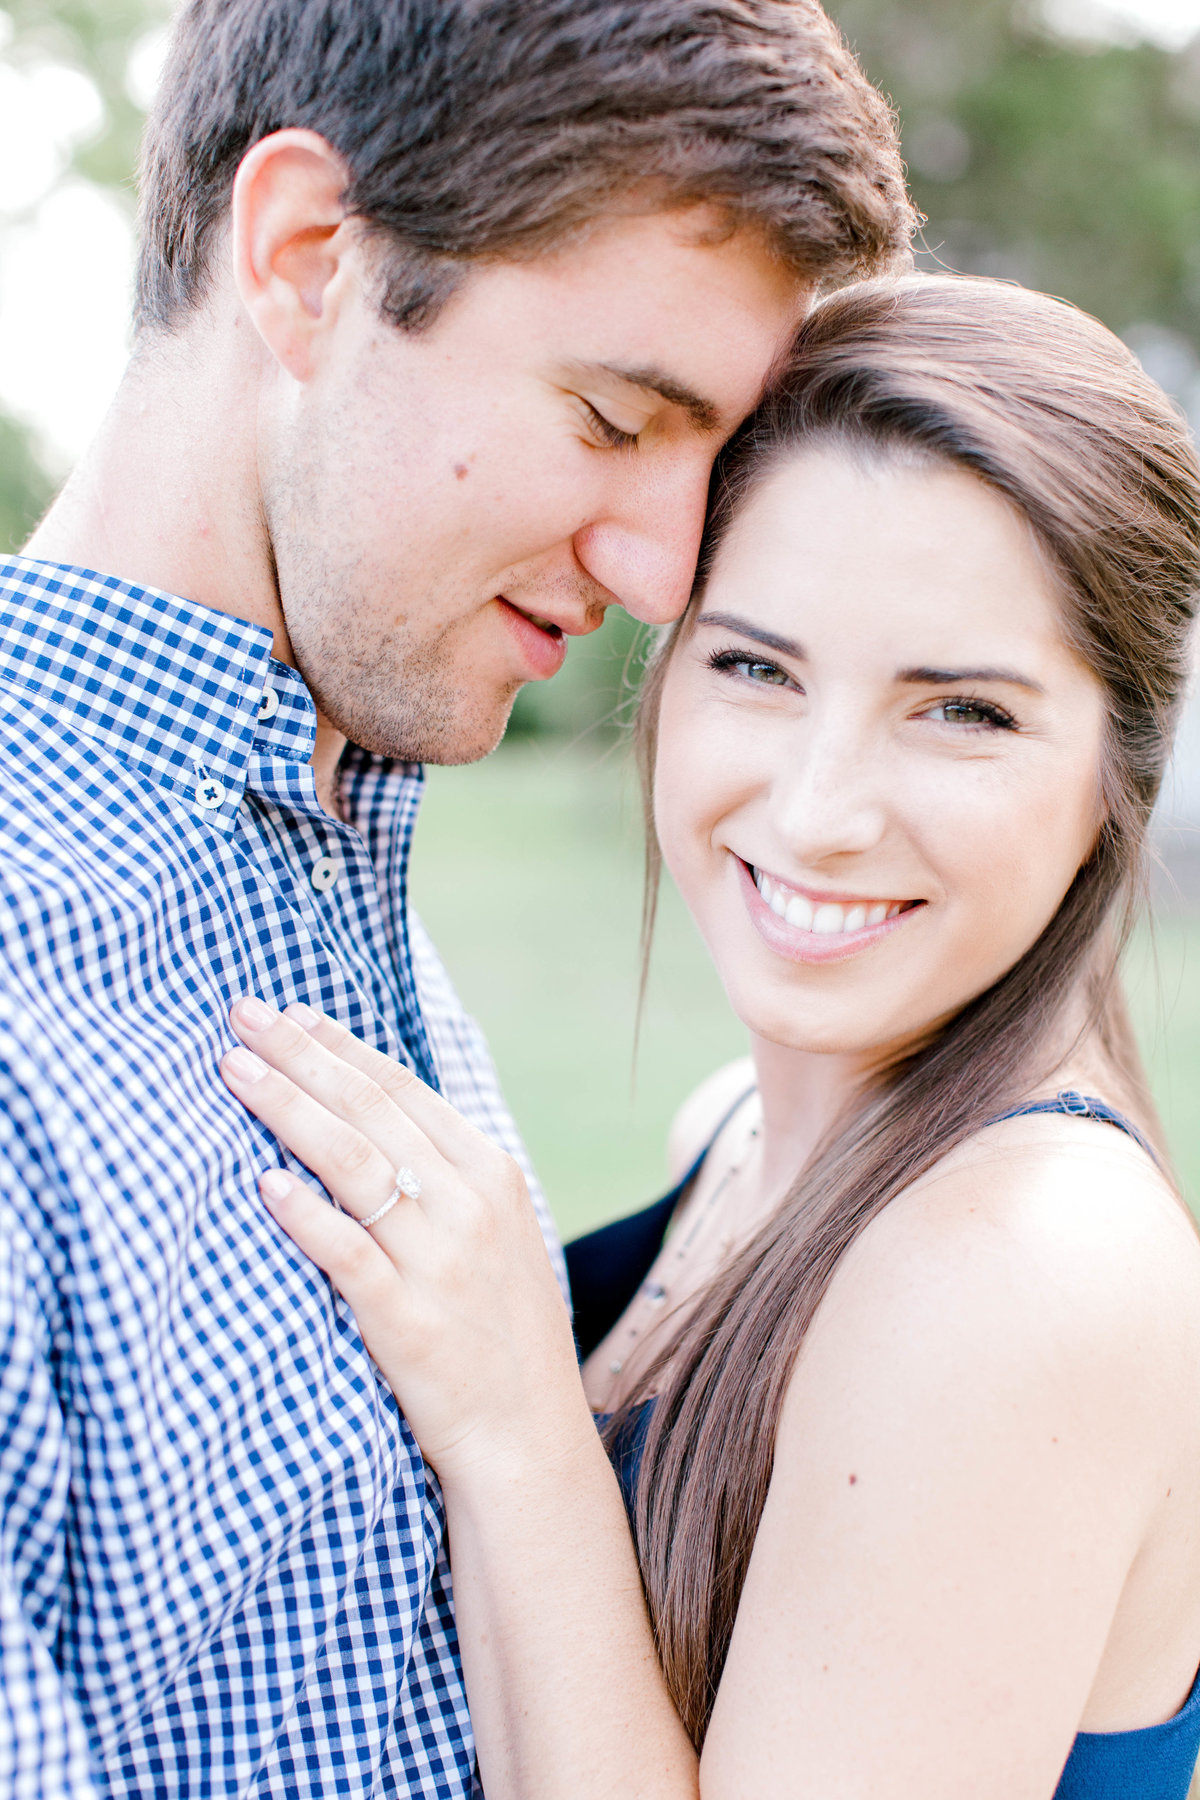 Melanie Foster Photography - Norman Oklahoma Senior and Engagement Photographer - Couple Engagement Photo - 18